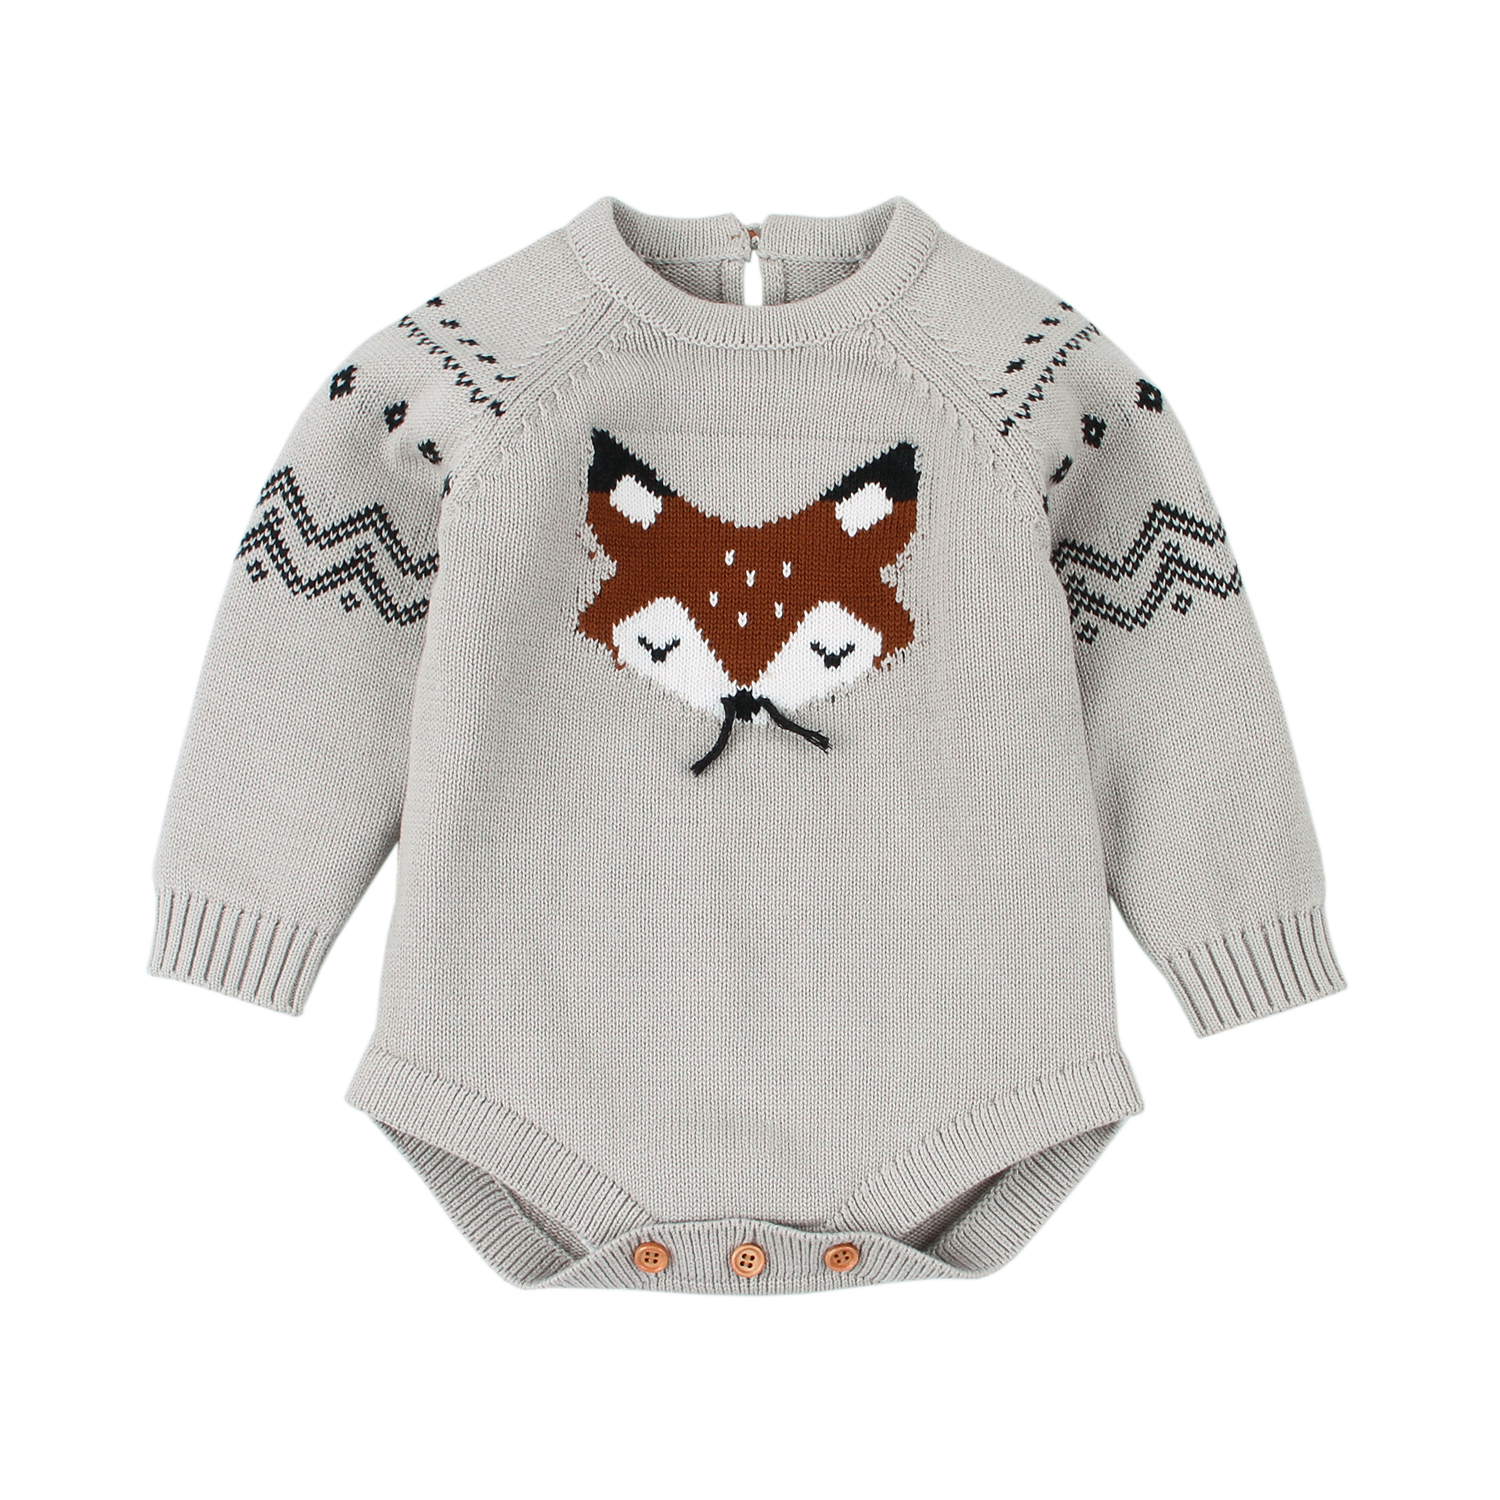 Newborn Baby Bodysuits Long Sleeve Cartoon Fox Knitted Toddler Kids Boys Girls Body Tops Jumpsuits Children's Costumes One Piece